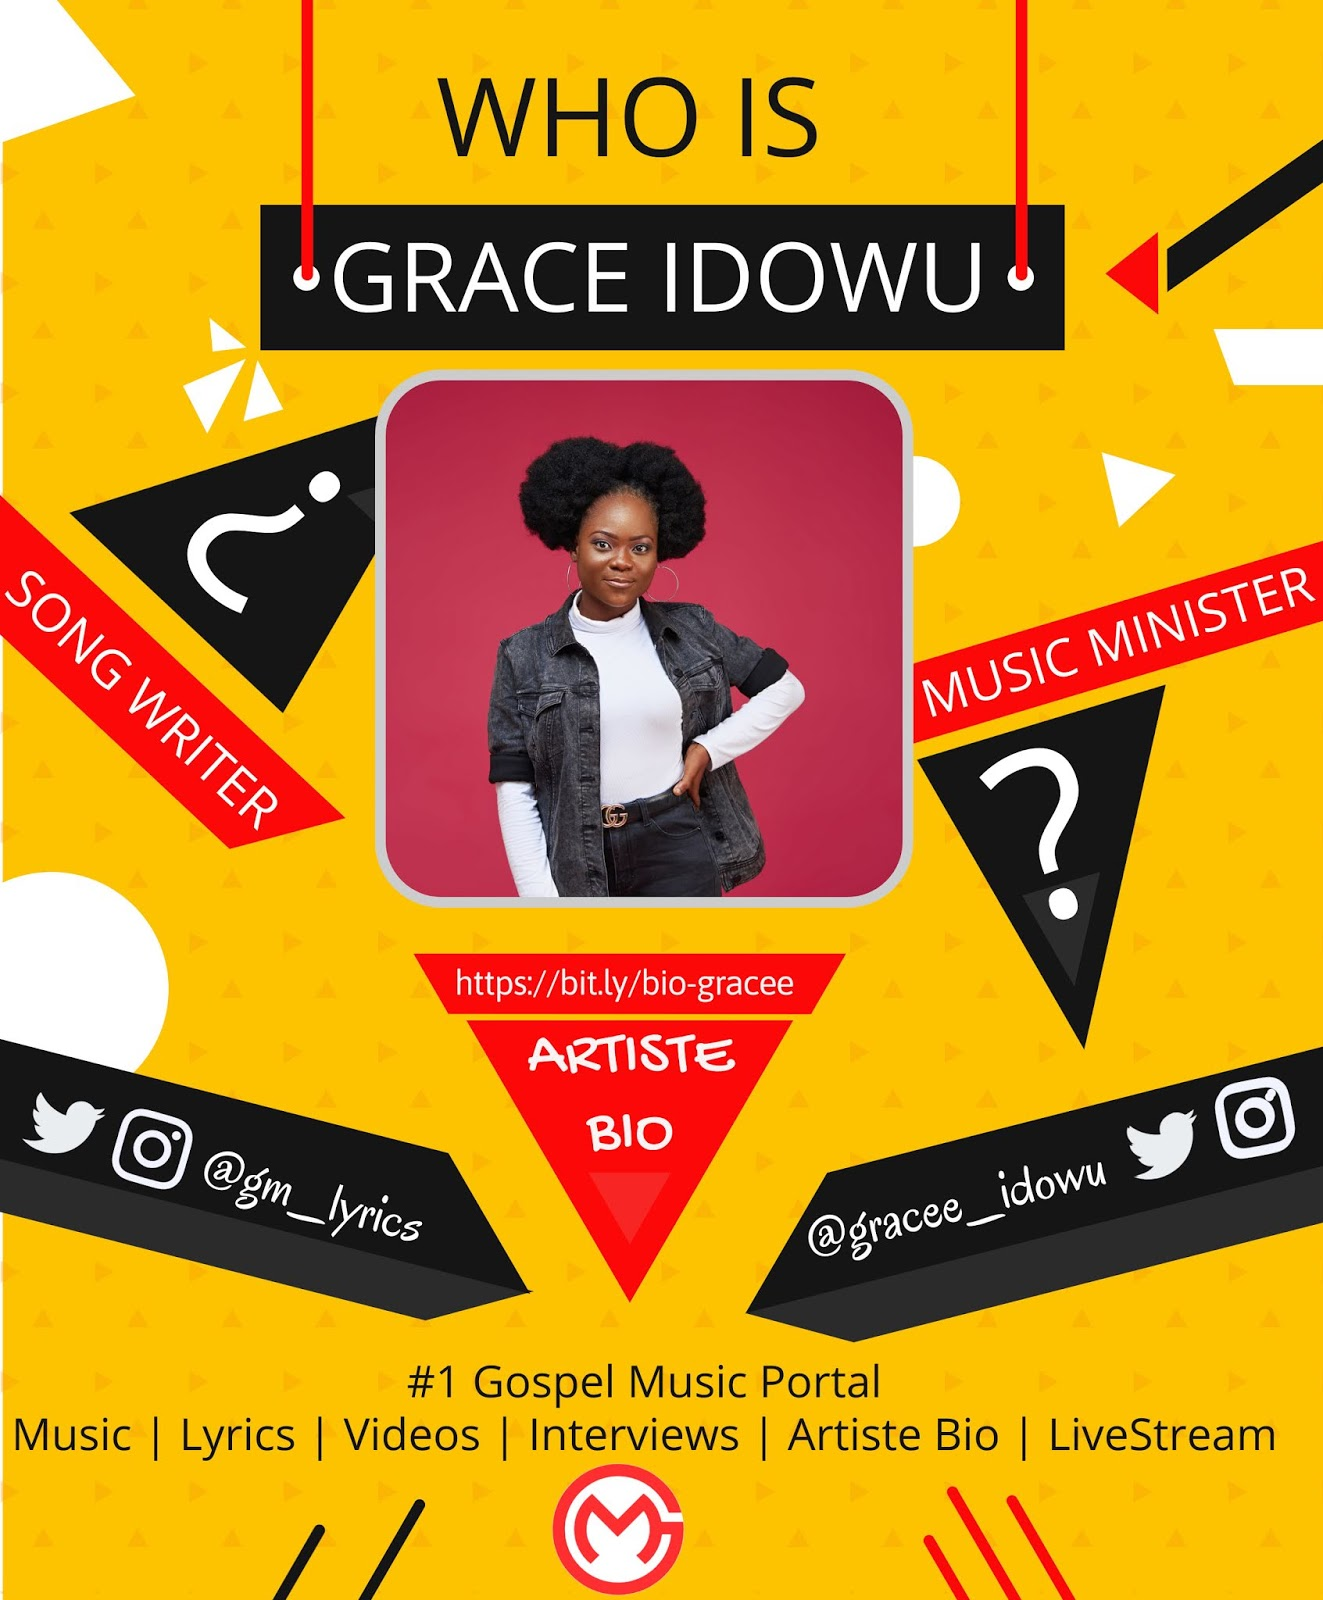 Grace Idowu - All you need to know about her